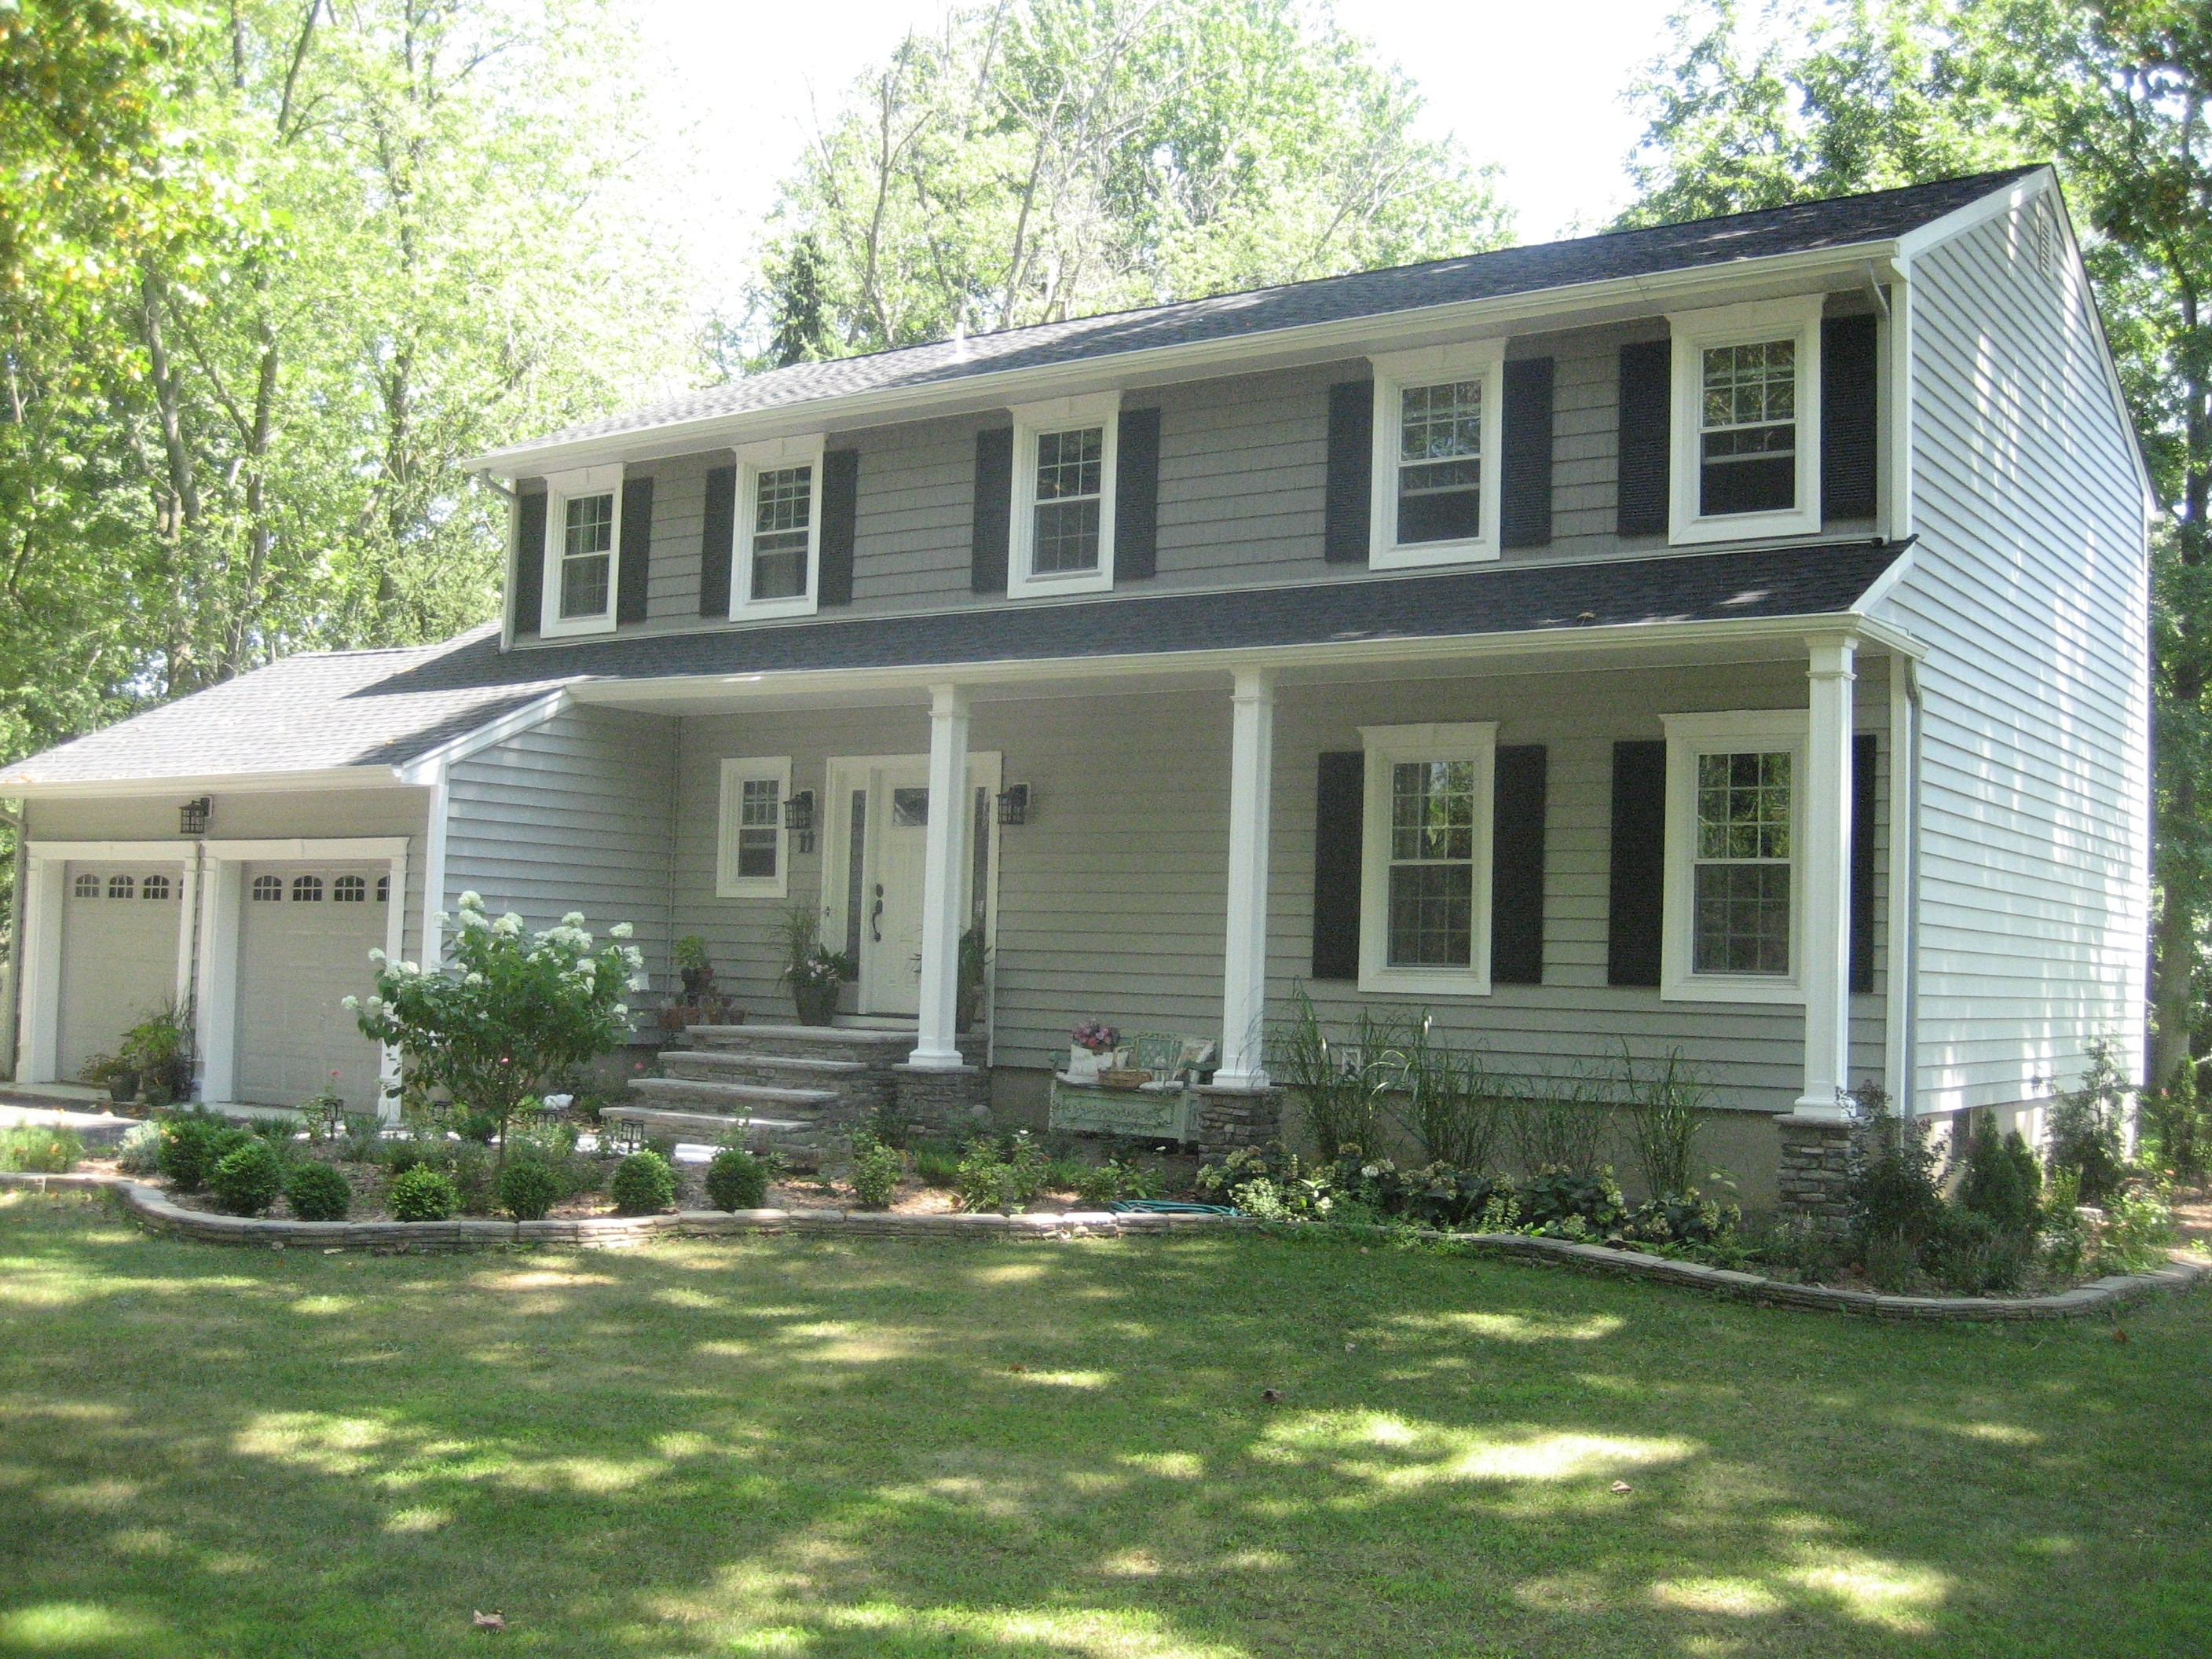 Siding Project In Shrewsbury Monmouth County New Jersey